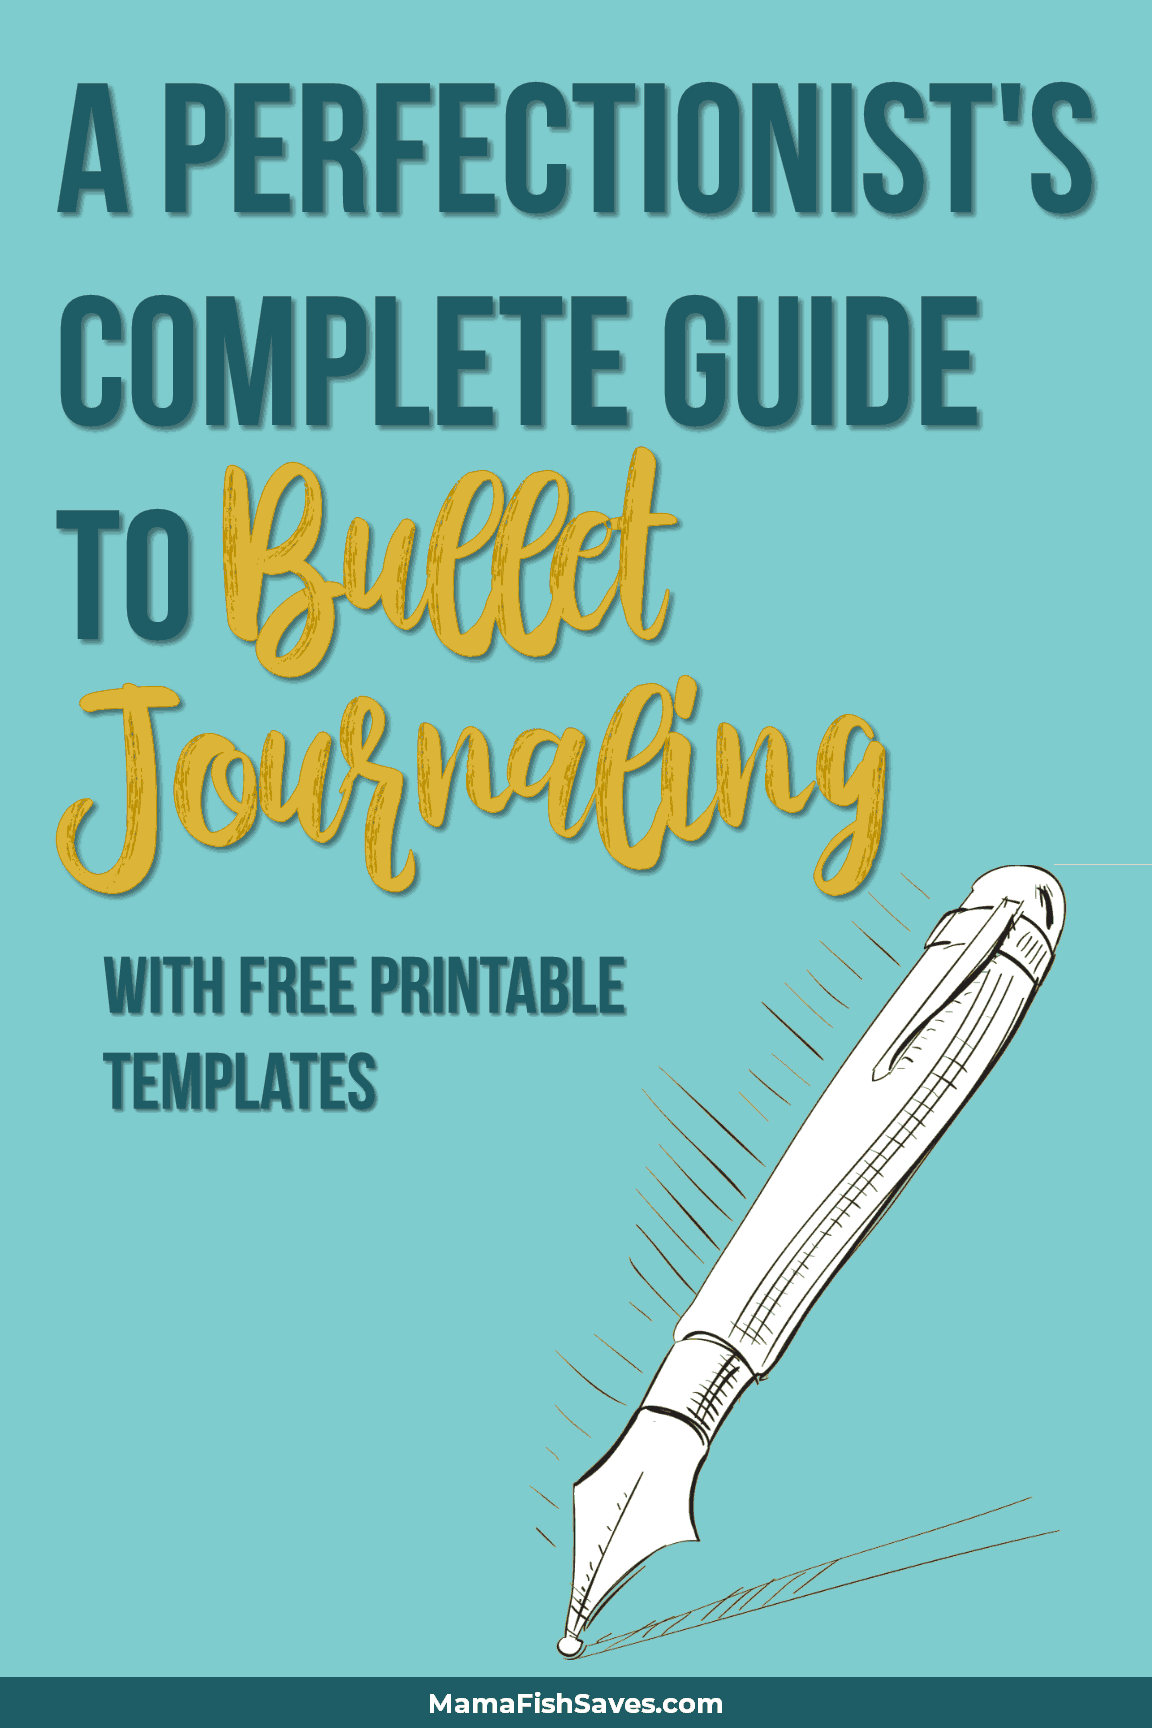 Complete Guide to Bullet Journaling